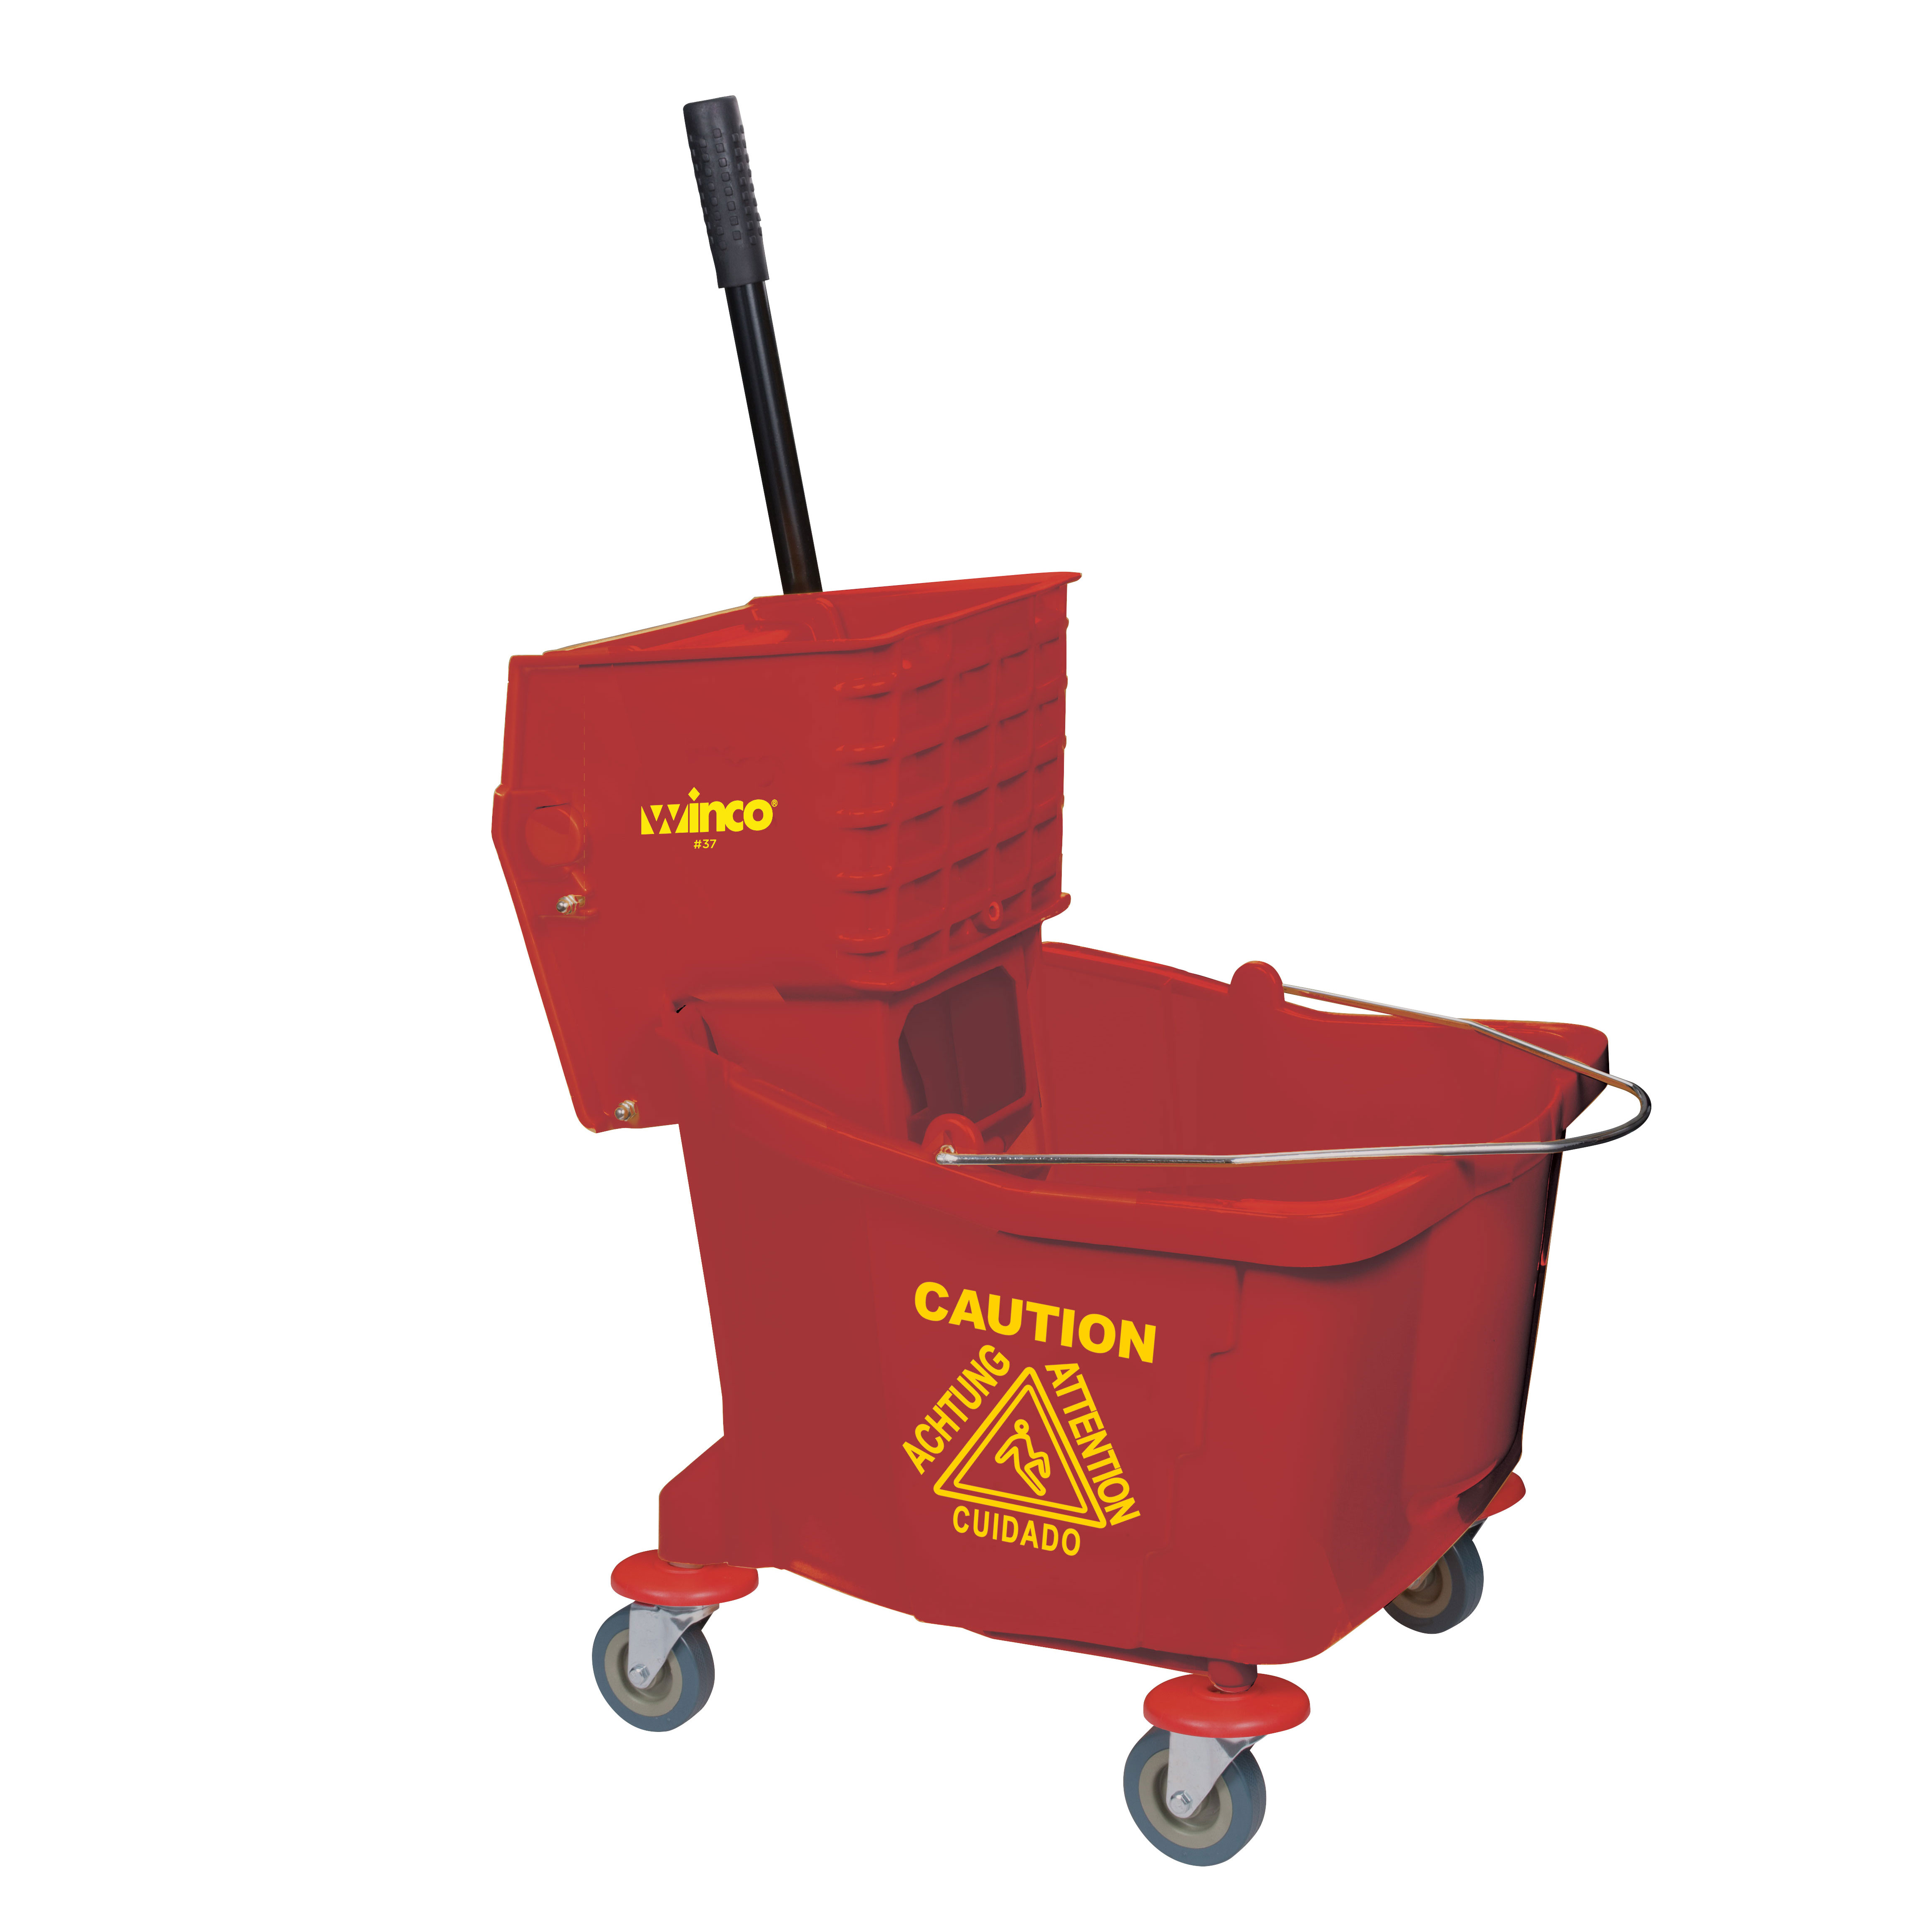 Winco MPB-36R mop bucket wringer combination